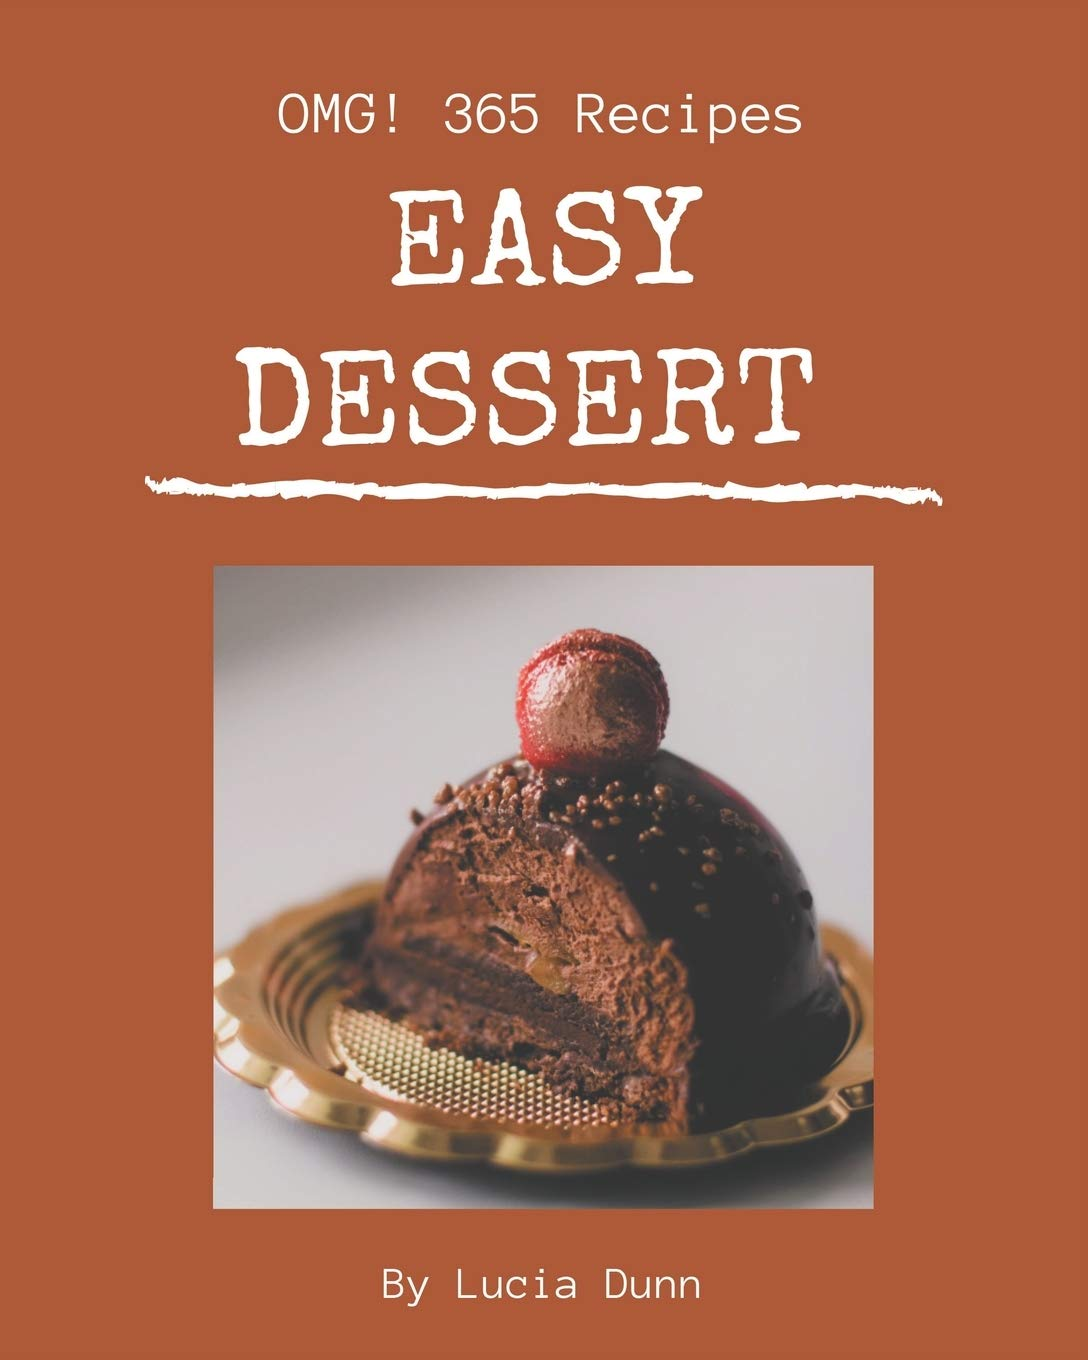 Omg 365 Easy Dessert Recipes Make Cooking At Home Easier With Easy Dessert Cookbook Dunn Lucia 9798669258092 Amazon Com Books